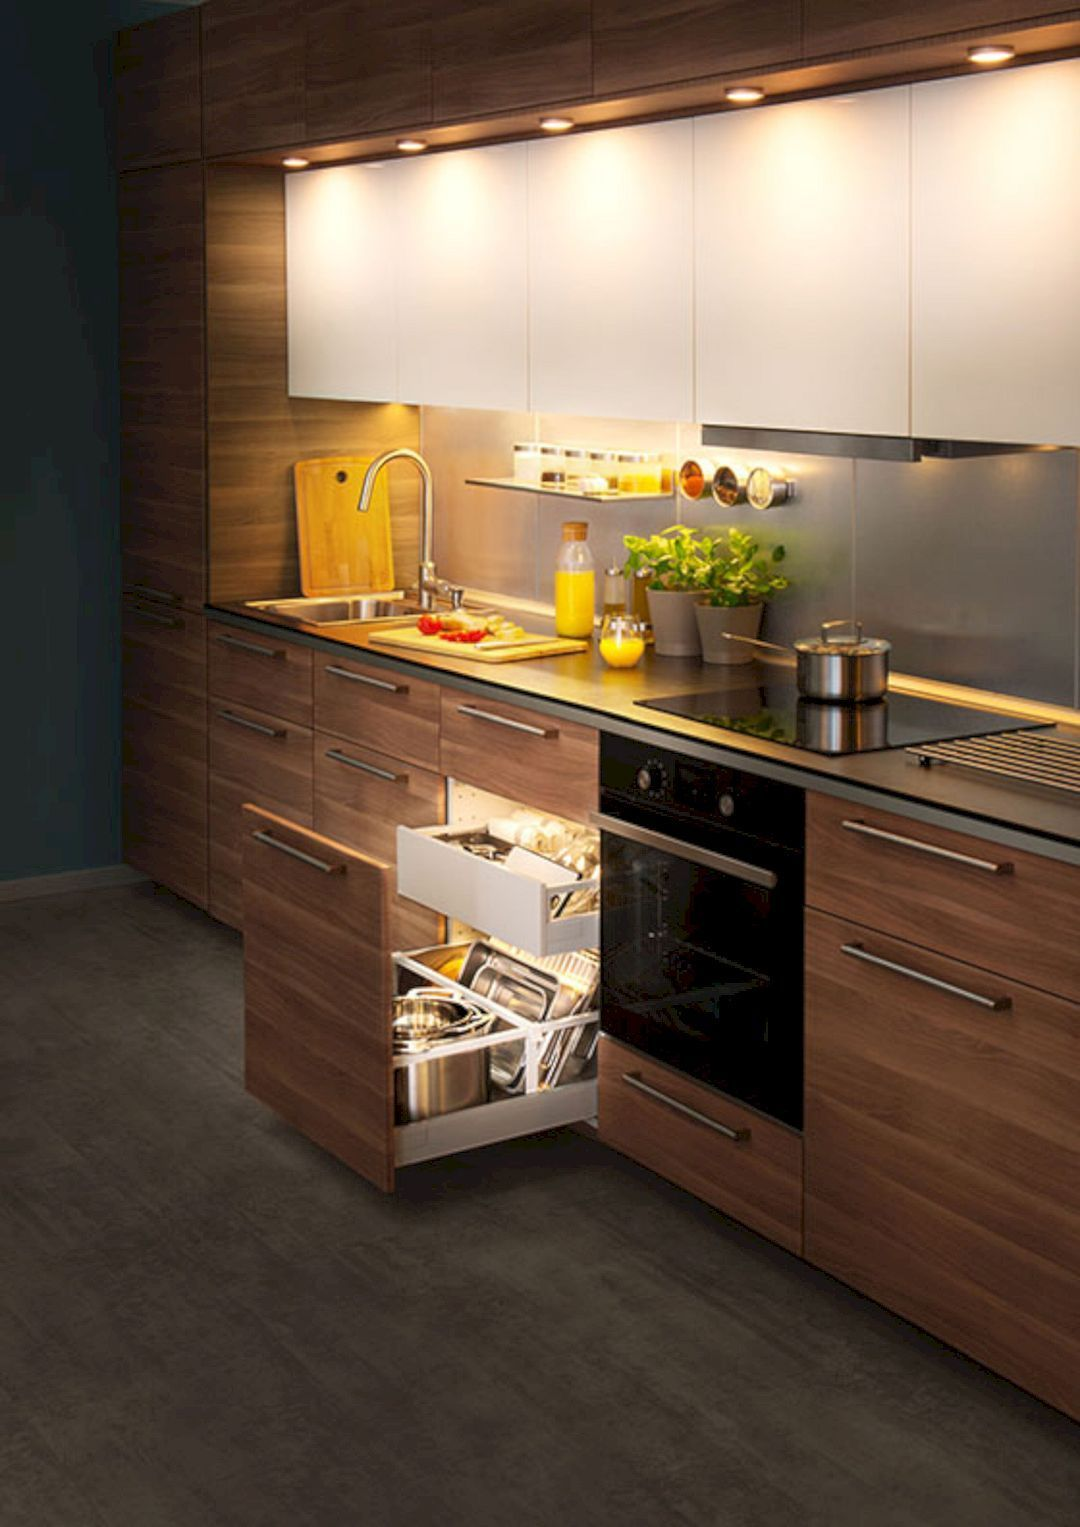 146 Amazing Small Kitchen Ideas That Perfect For Your Tiny Space  Https://www.futuristarchitecture.com/19304 Small Kitchen.html